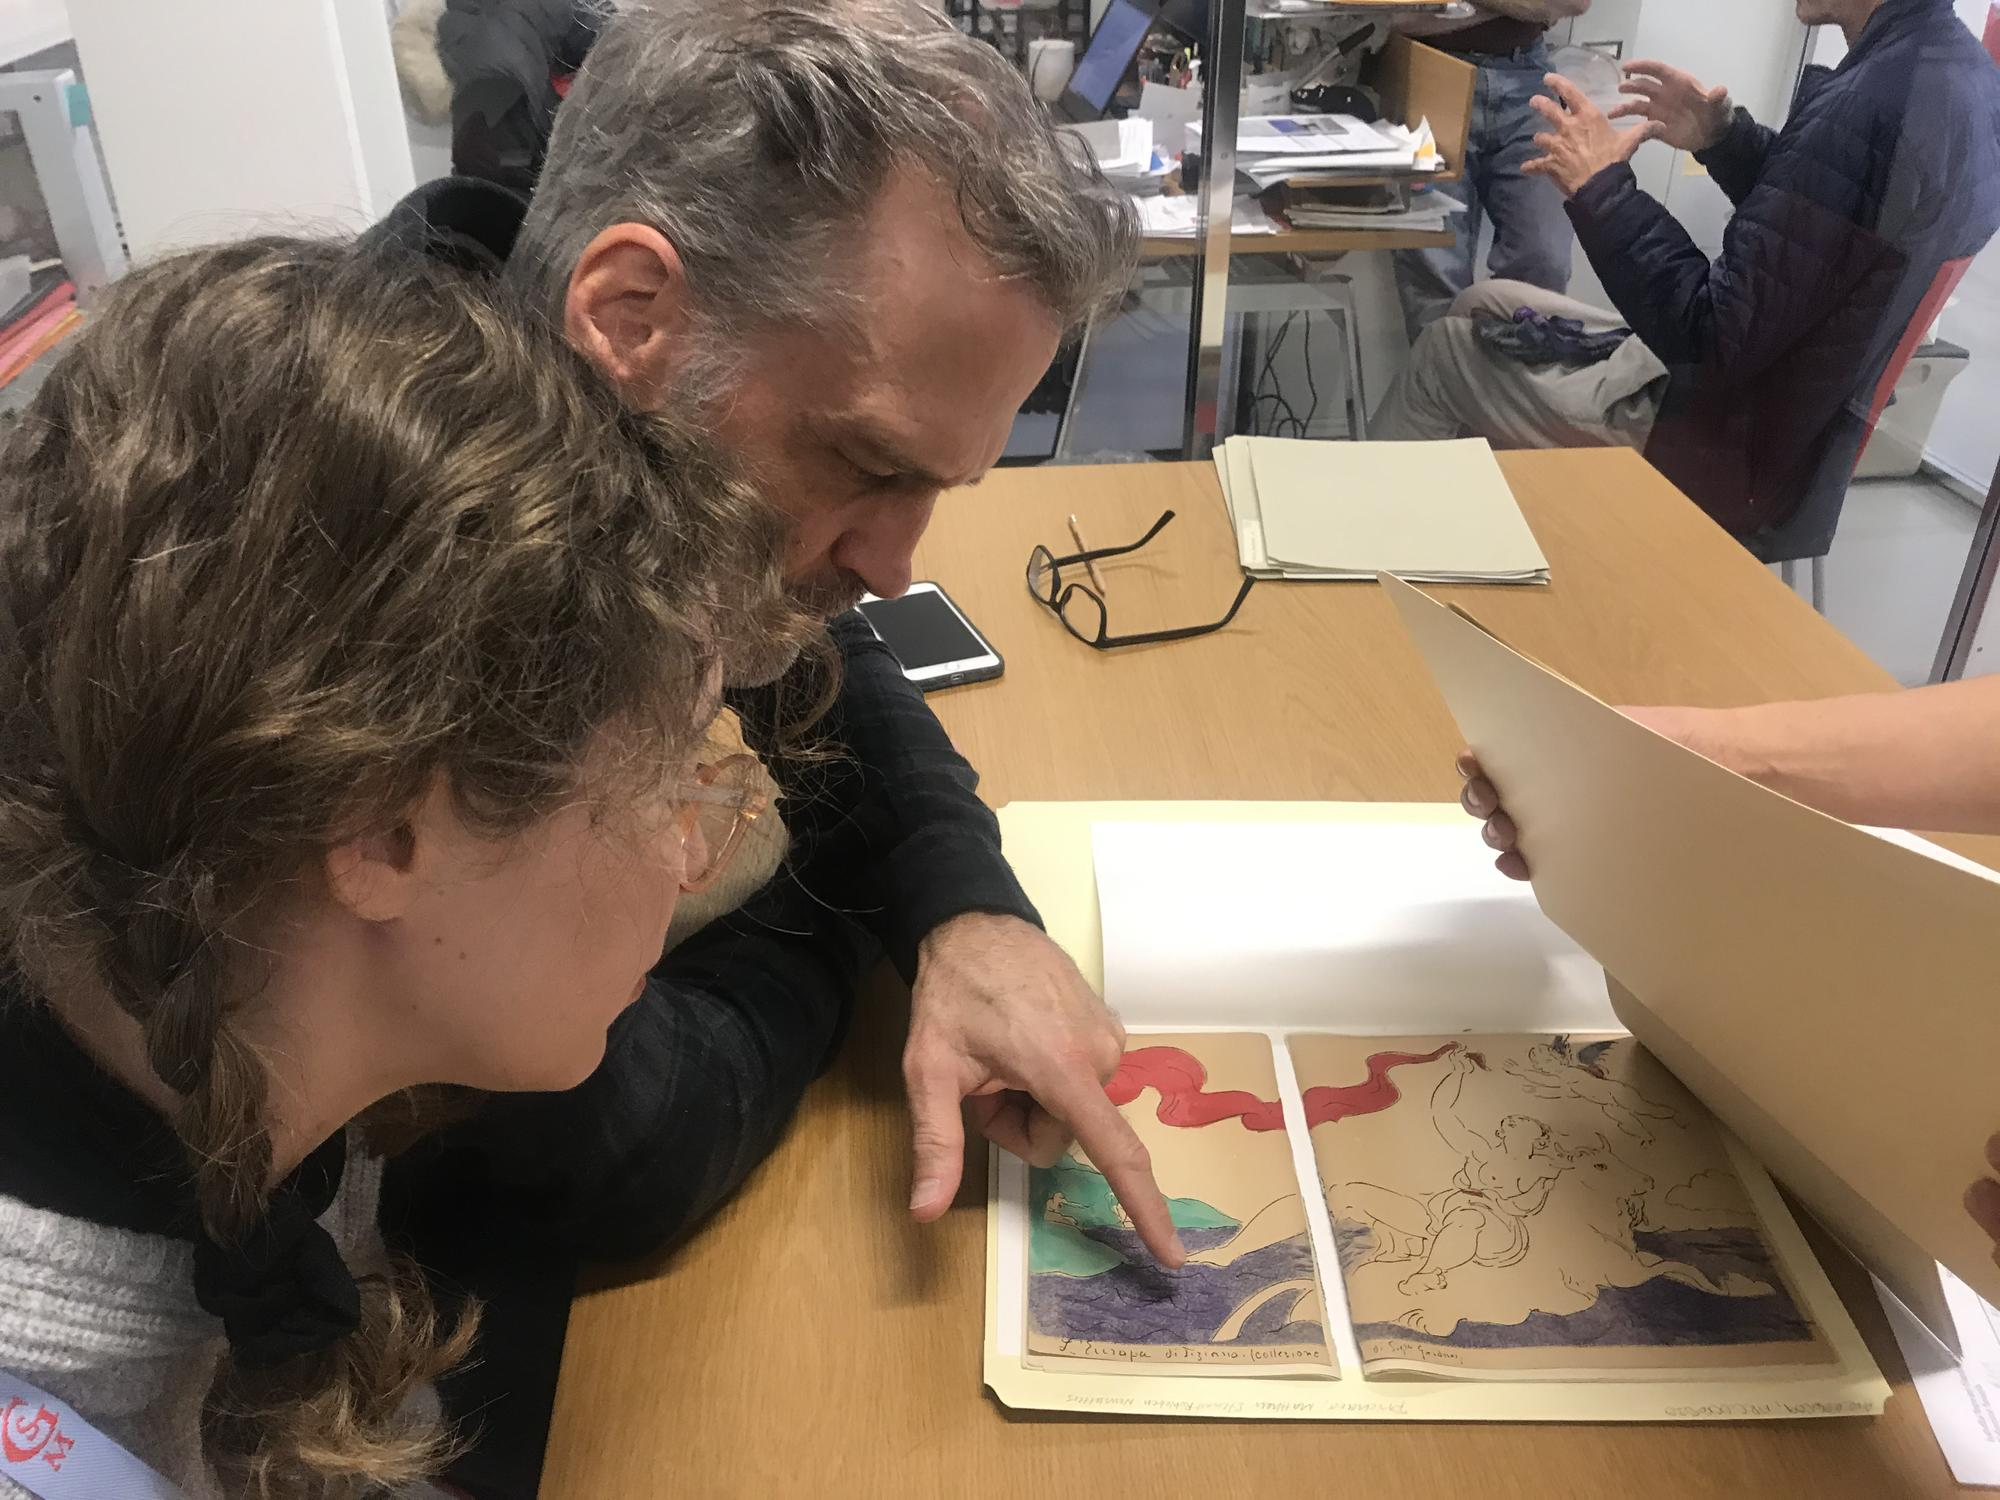 Mary and Patrick Kelley were delighted to view two copies of L'Eco, an art magazine  printed in 1916